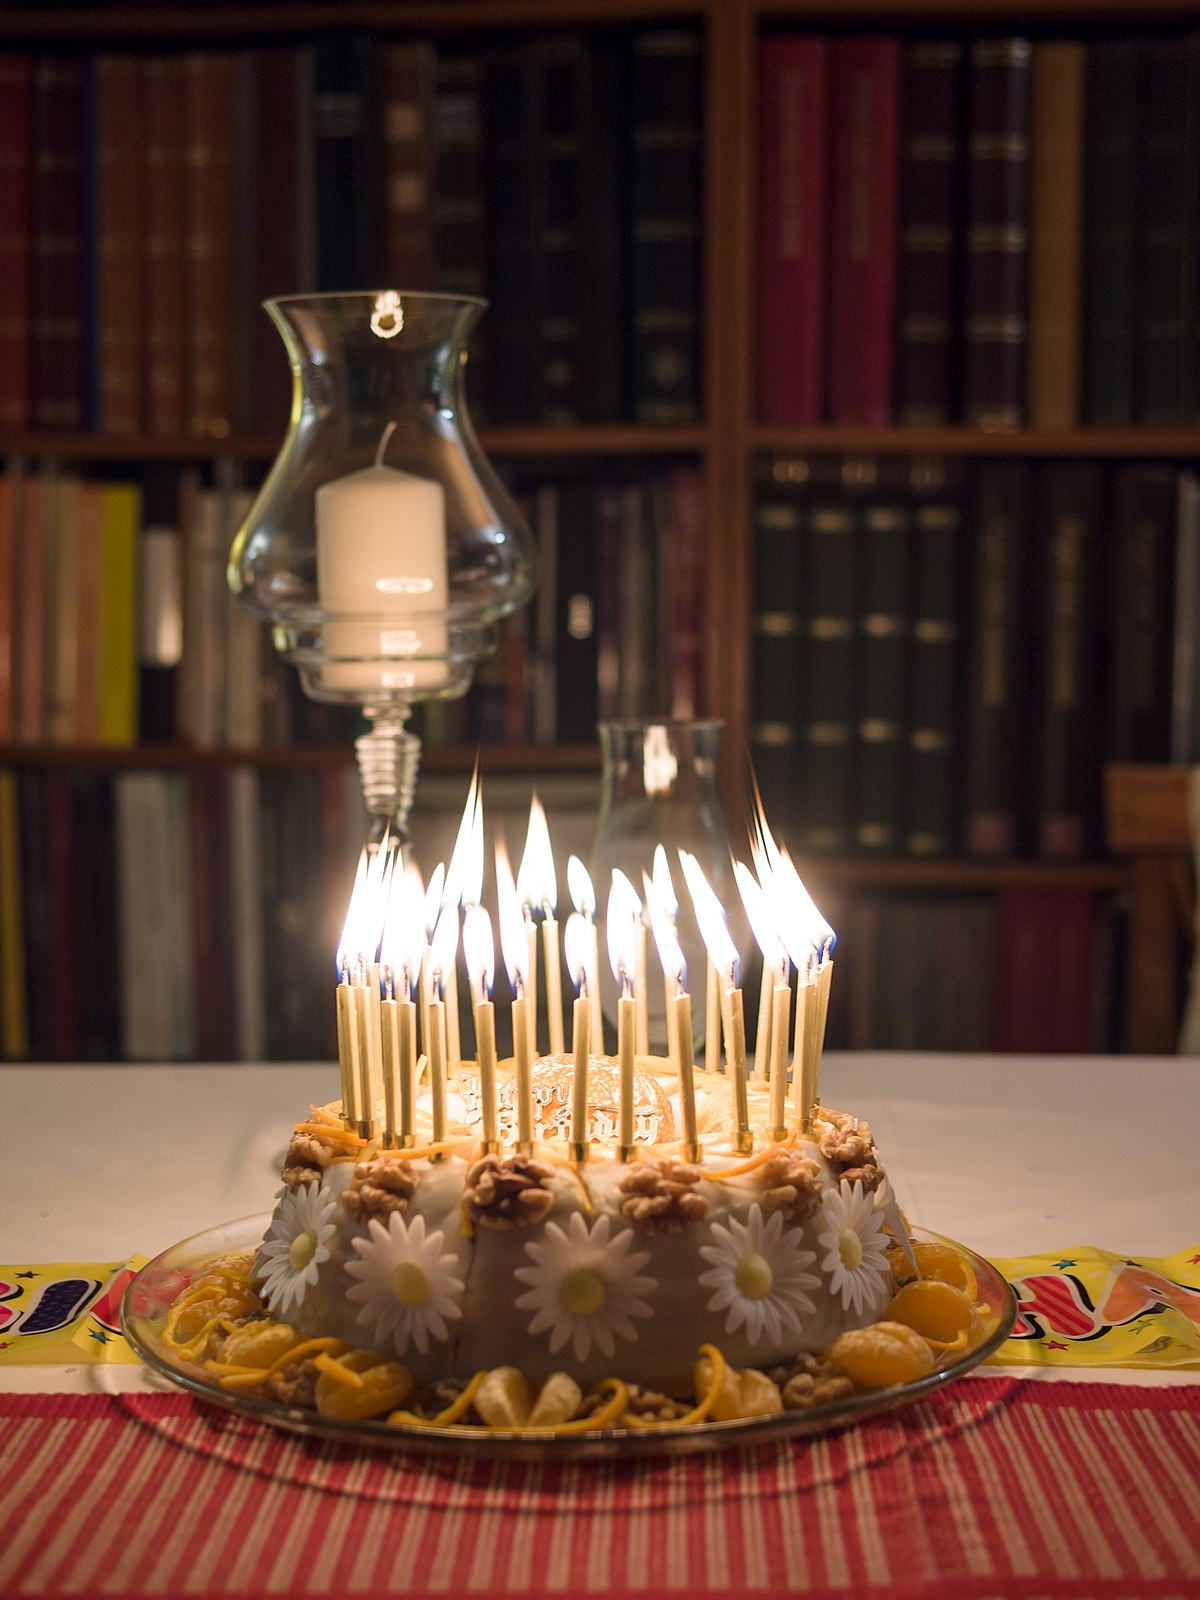 Best ideas about Cake Birthday . Save or Pin Birthday cake Now.